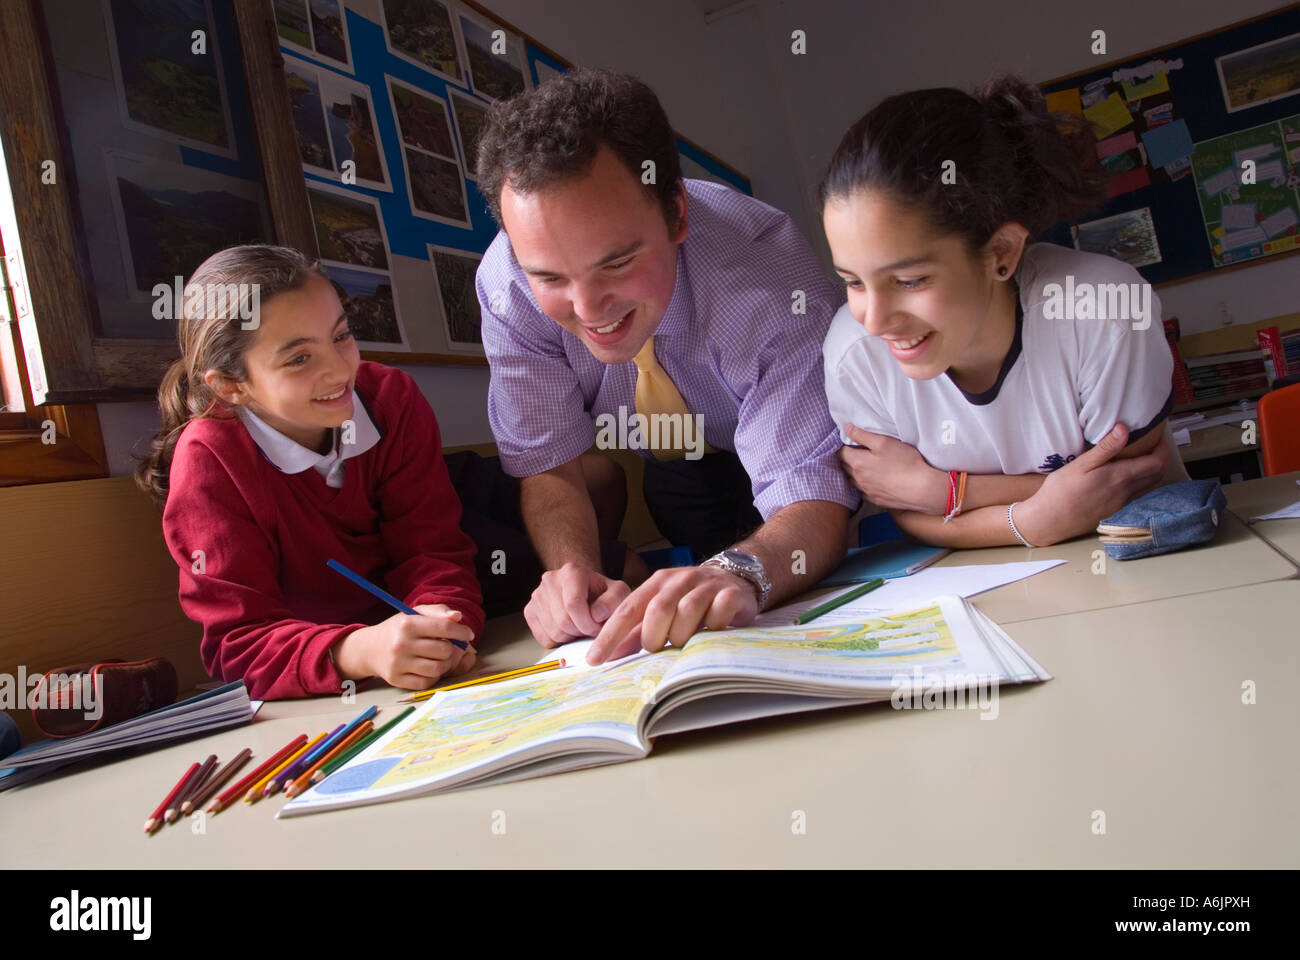 Teacher and junior pupils in school classroom happily interacting together on a geography mapping project Stock Photo